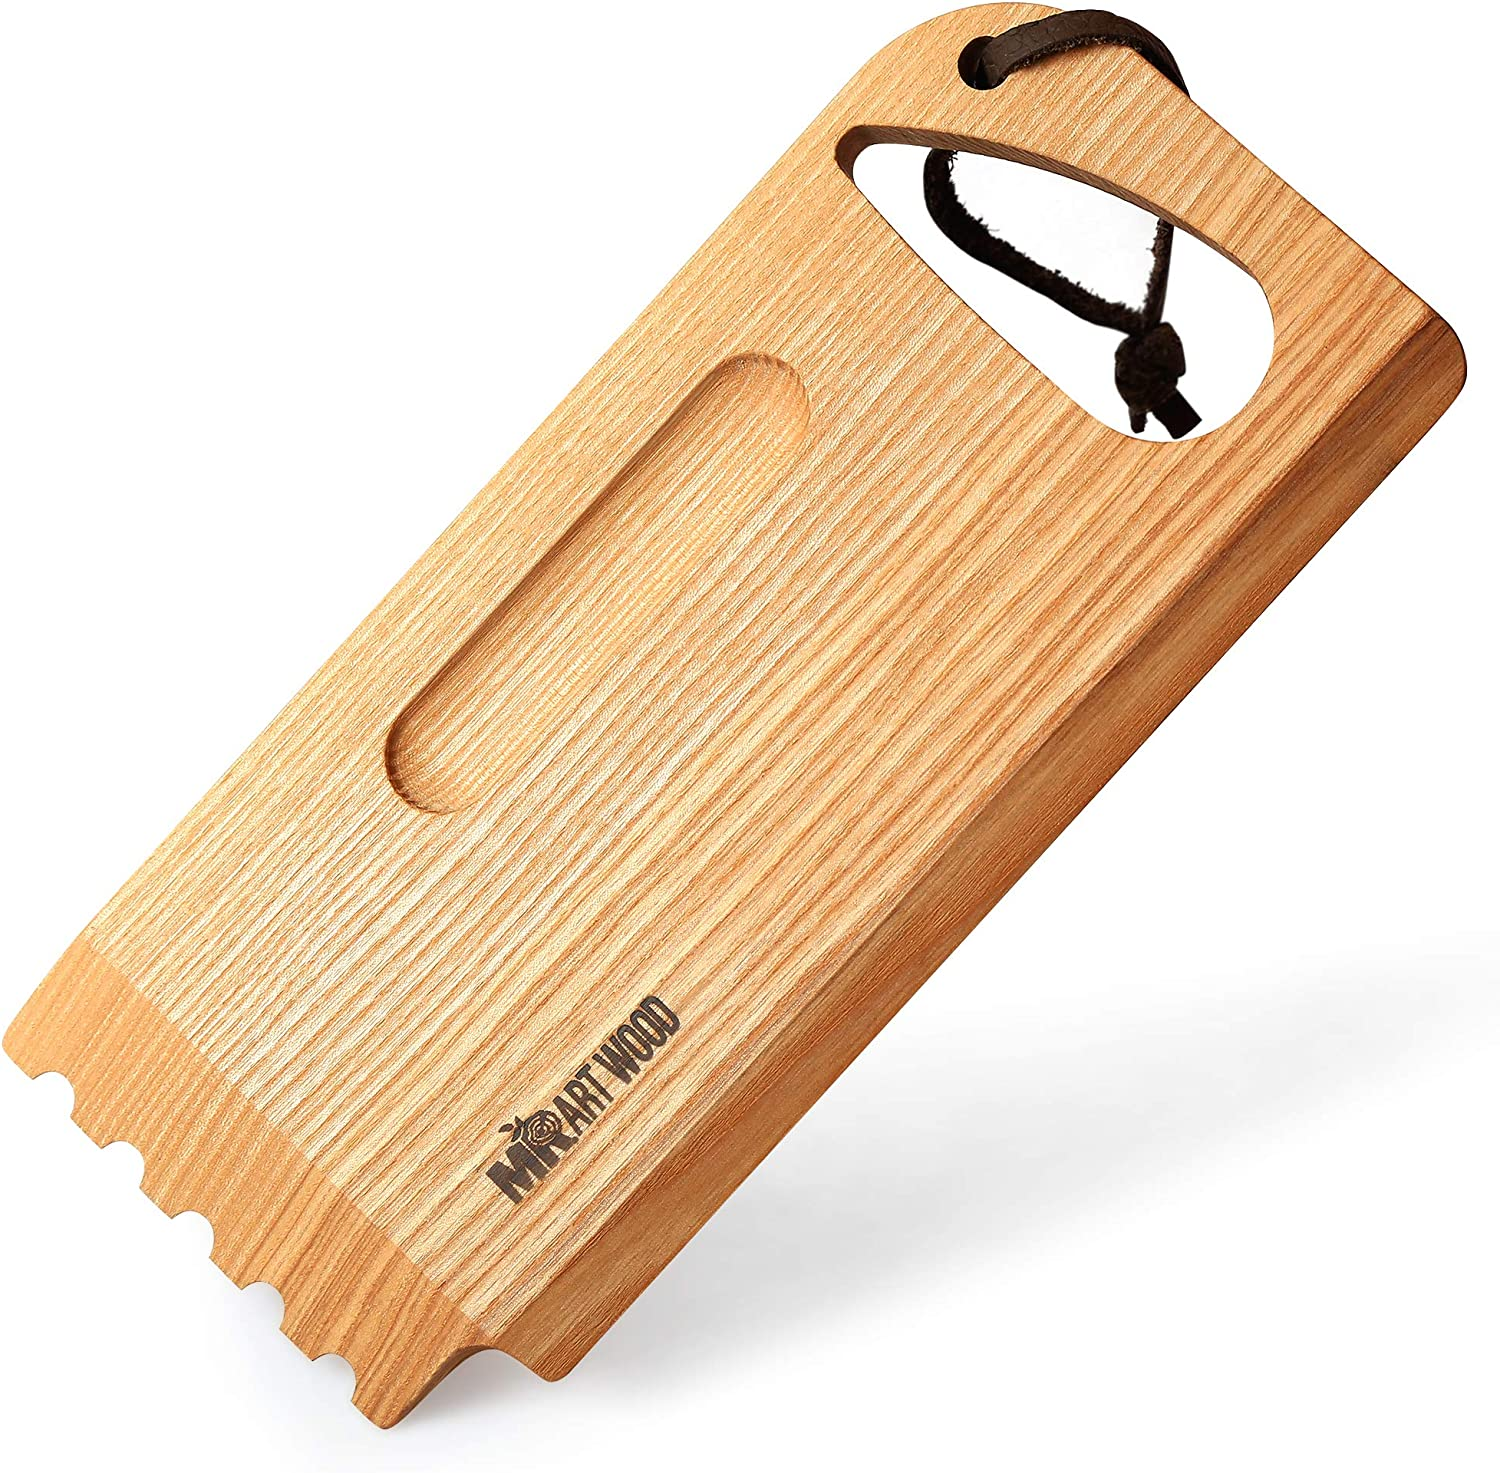 "Mr.Art Wood BBQ and Grill Wooden Scraper Tool, Size 10.6"" x 4.7"" – Made in Europe, Barbeque Cleaner with Grooved and Flat Edge for Ceramic or Metal Surfaces – 100% Natural One-Piece Ash Wood"